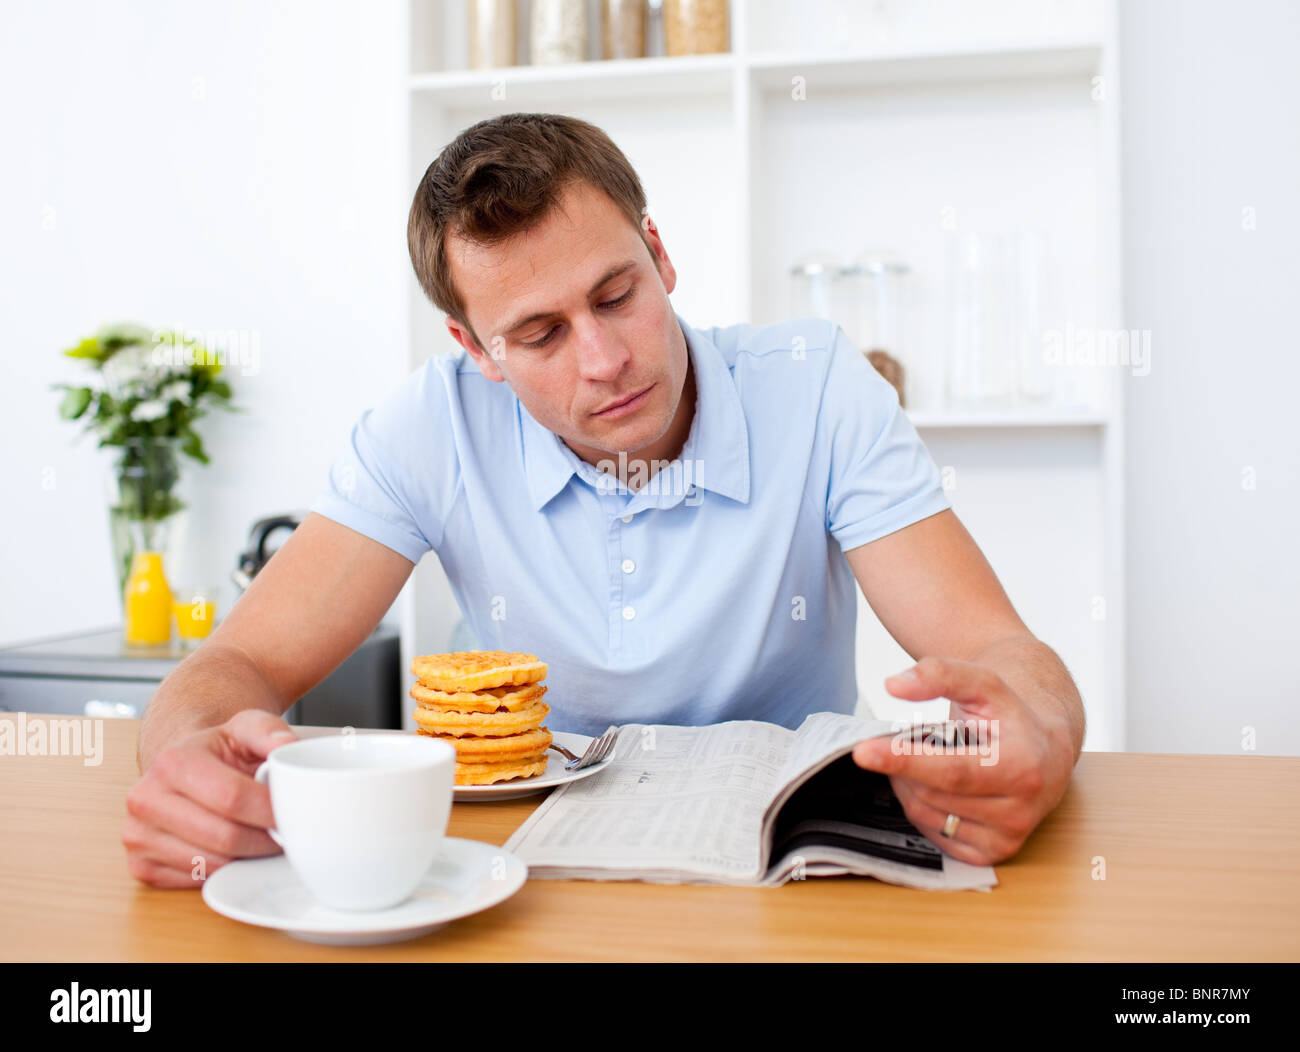 Concentrated Man Reading A Newspaper While Having